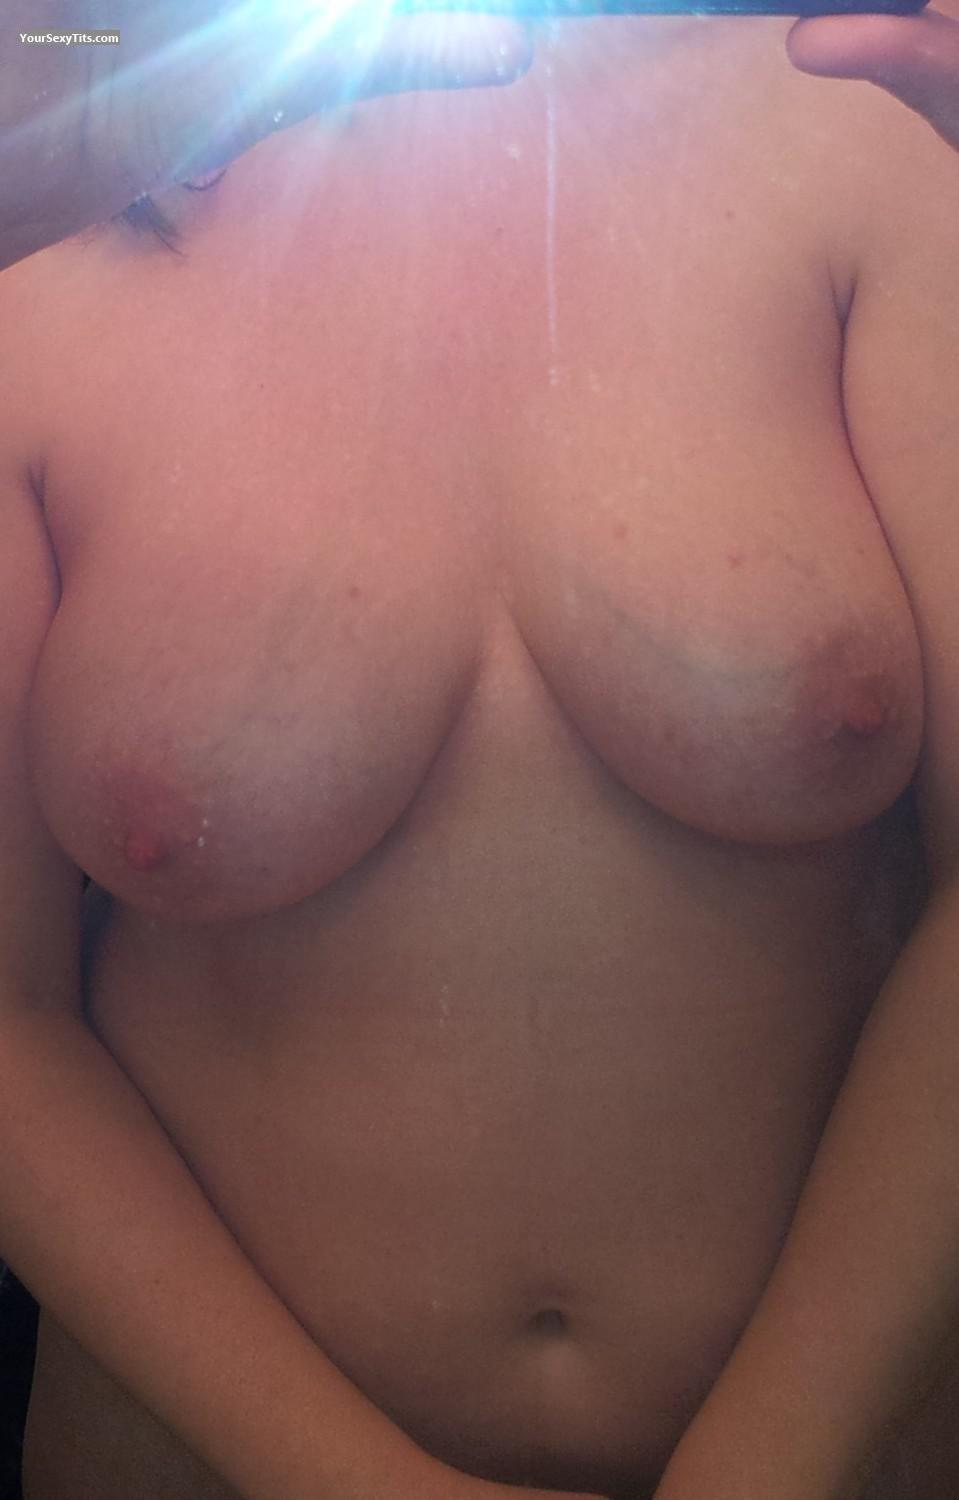 Big Tits Of My Wife C-16